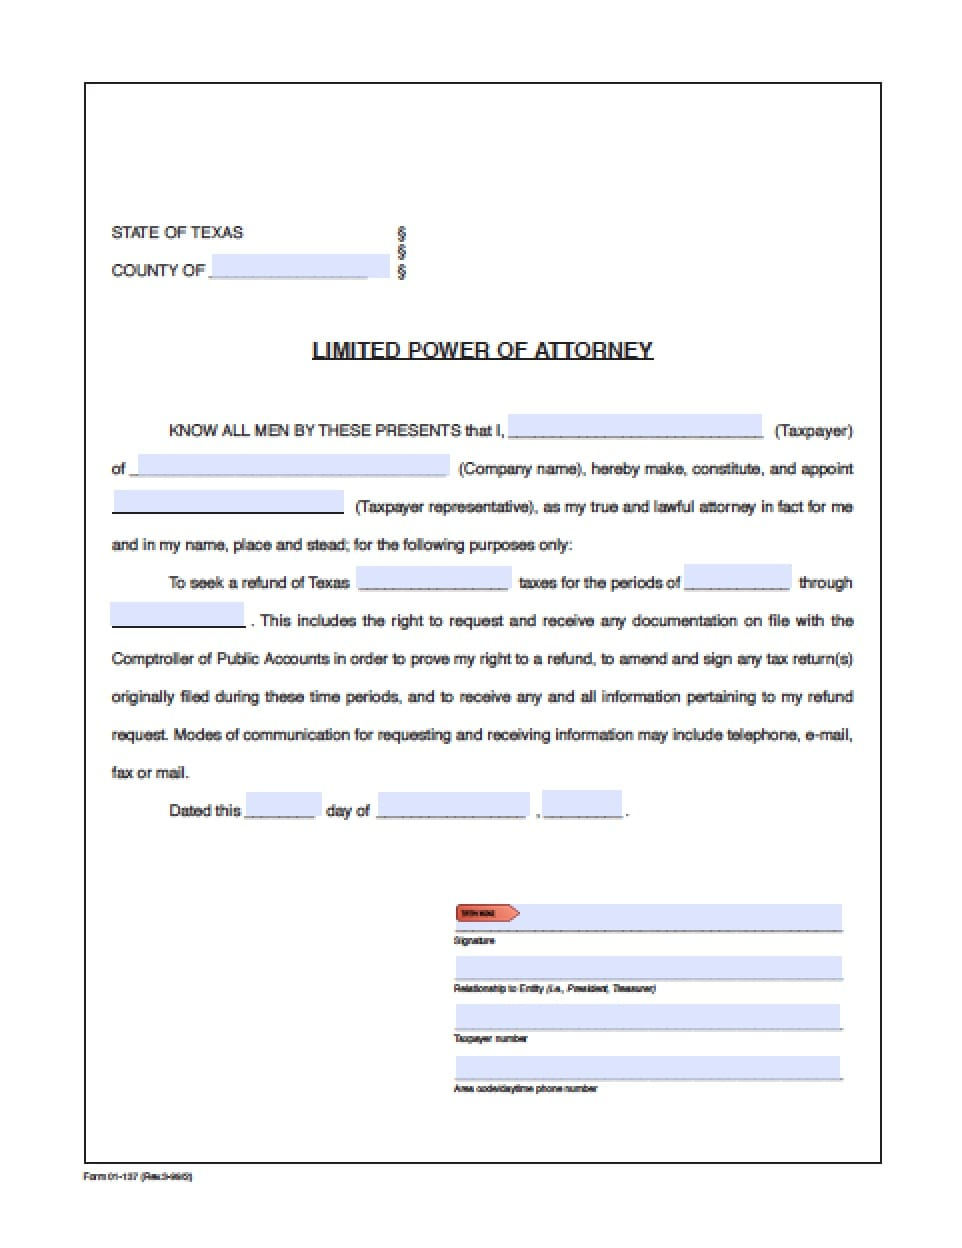 Texas Limited (Special) Power of Attorney Form - Power of Attorney ...